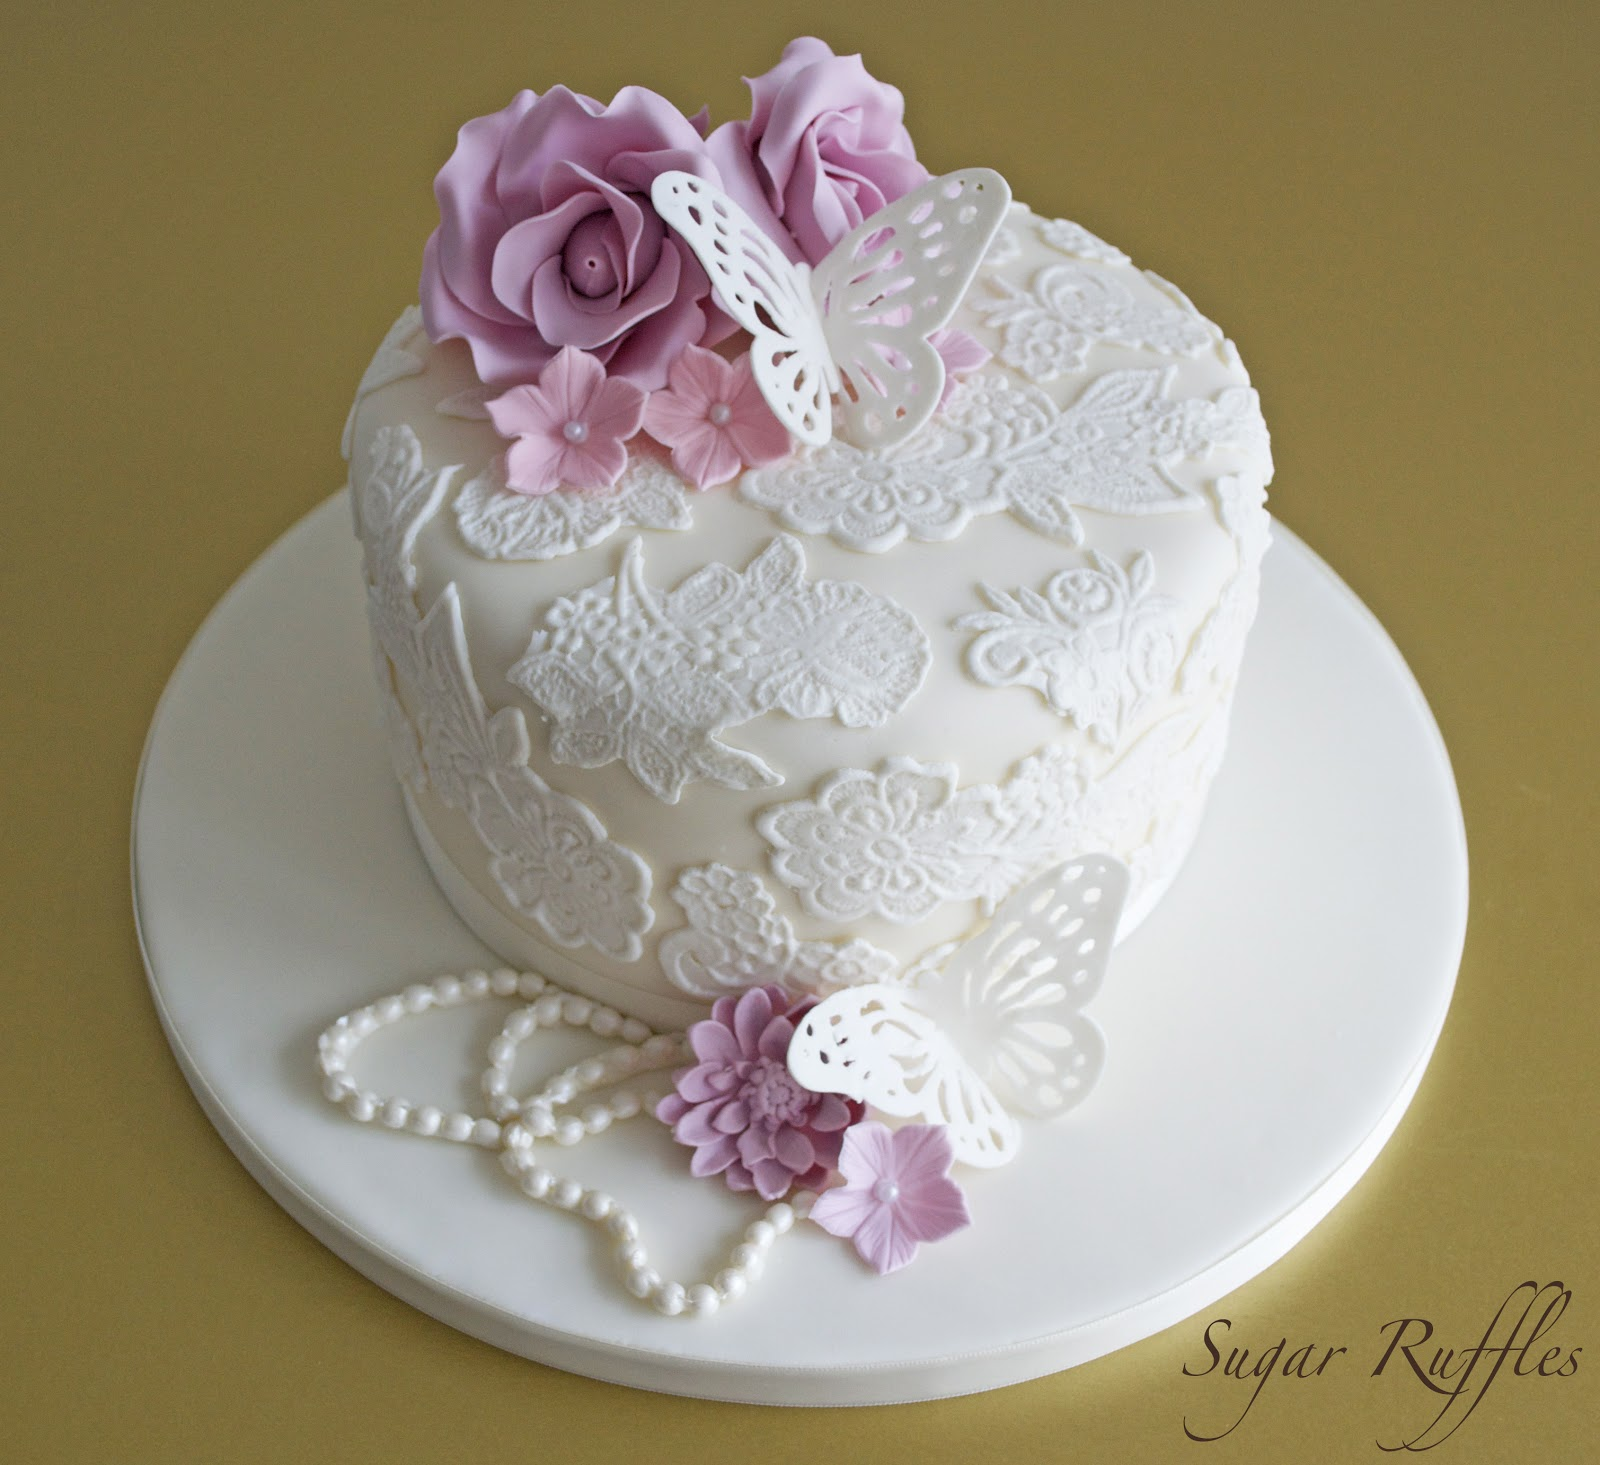 Cake Decorating Ideas For 70th Birthday